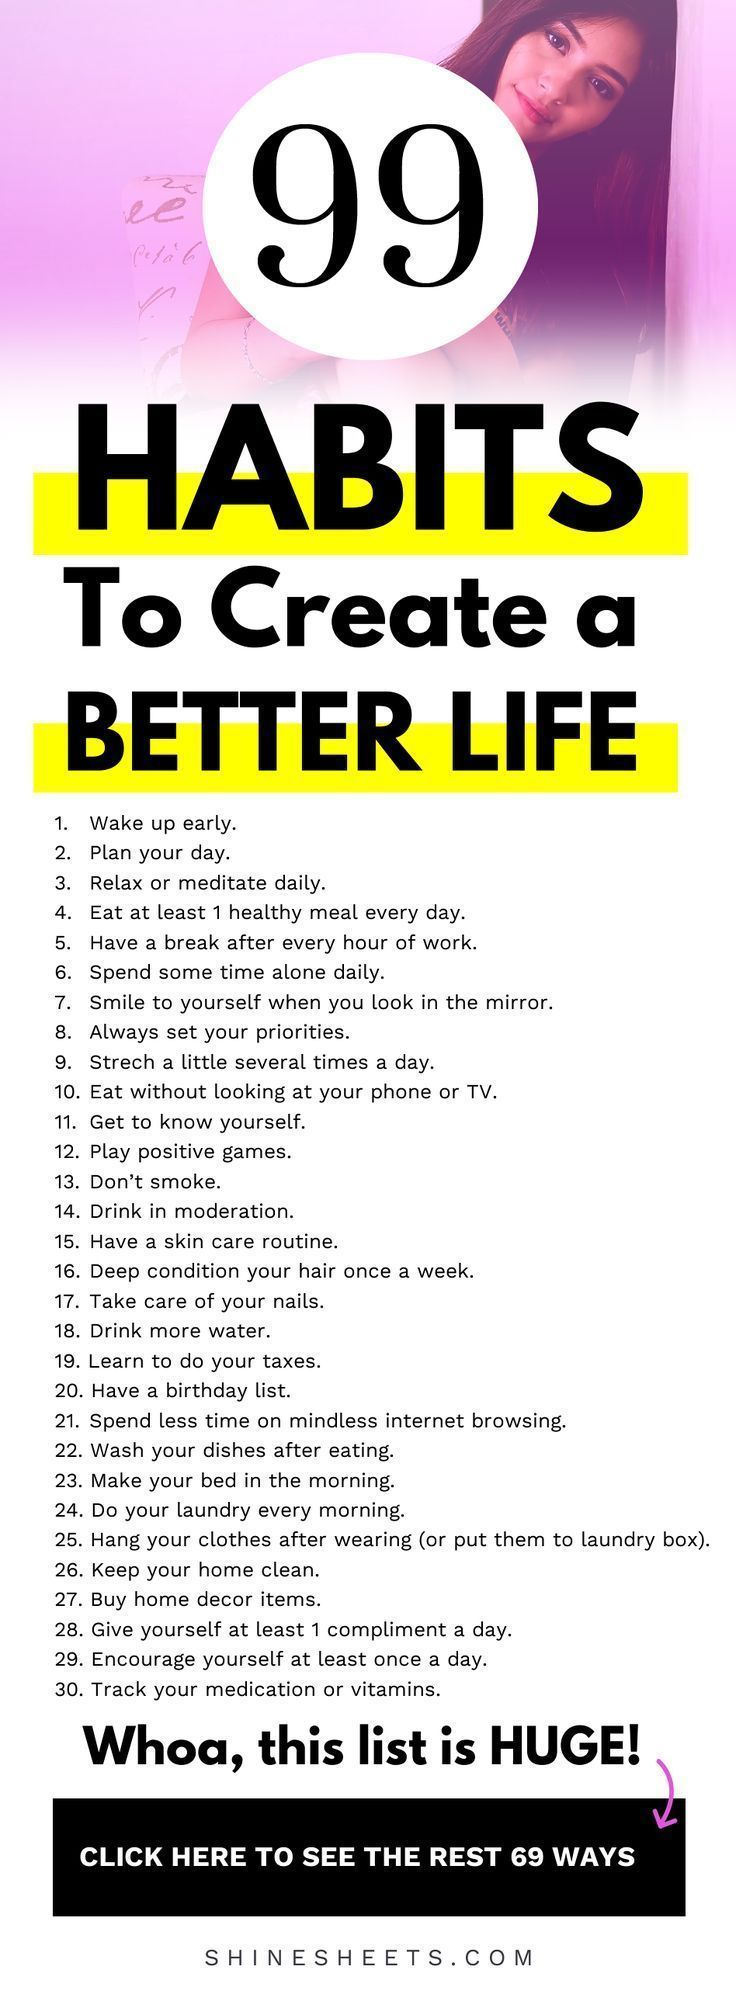 99 Habits For a Better Life + FREE Printable Checklist